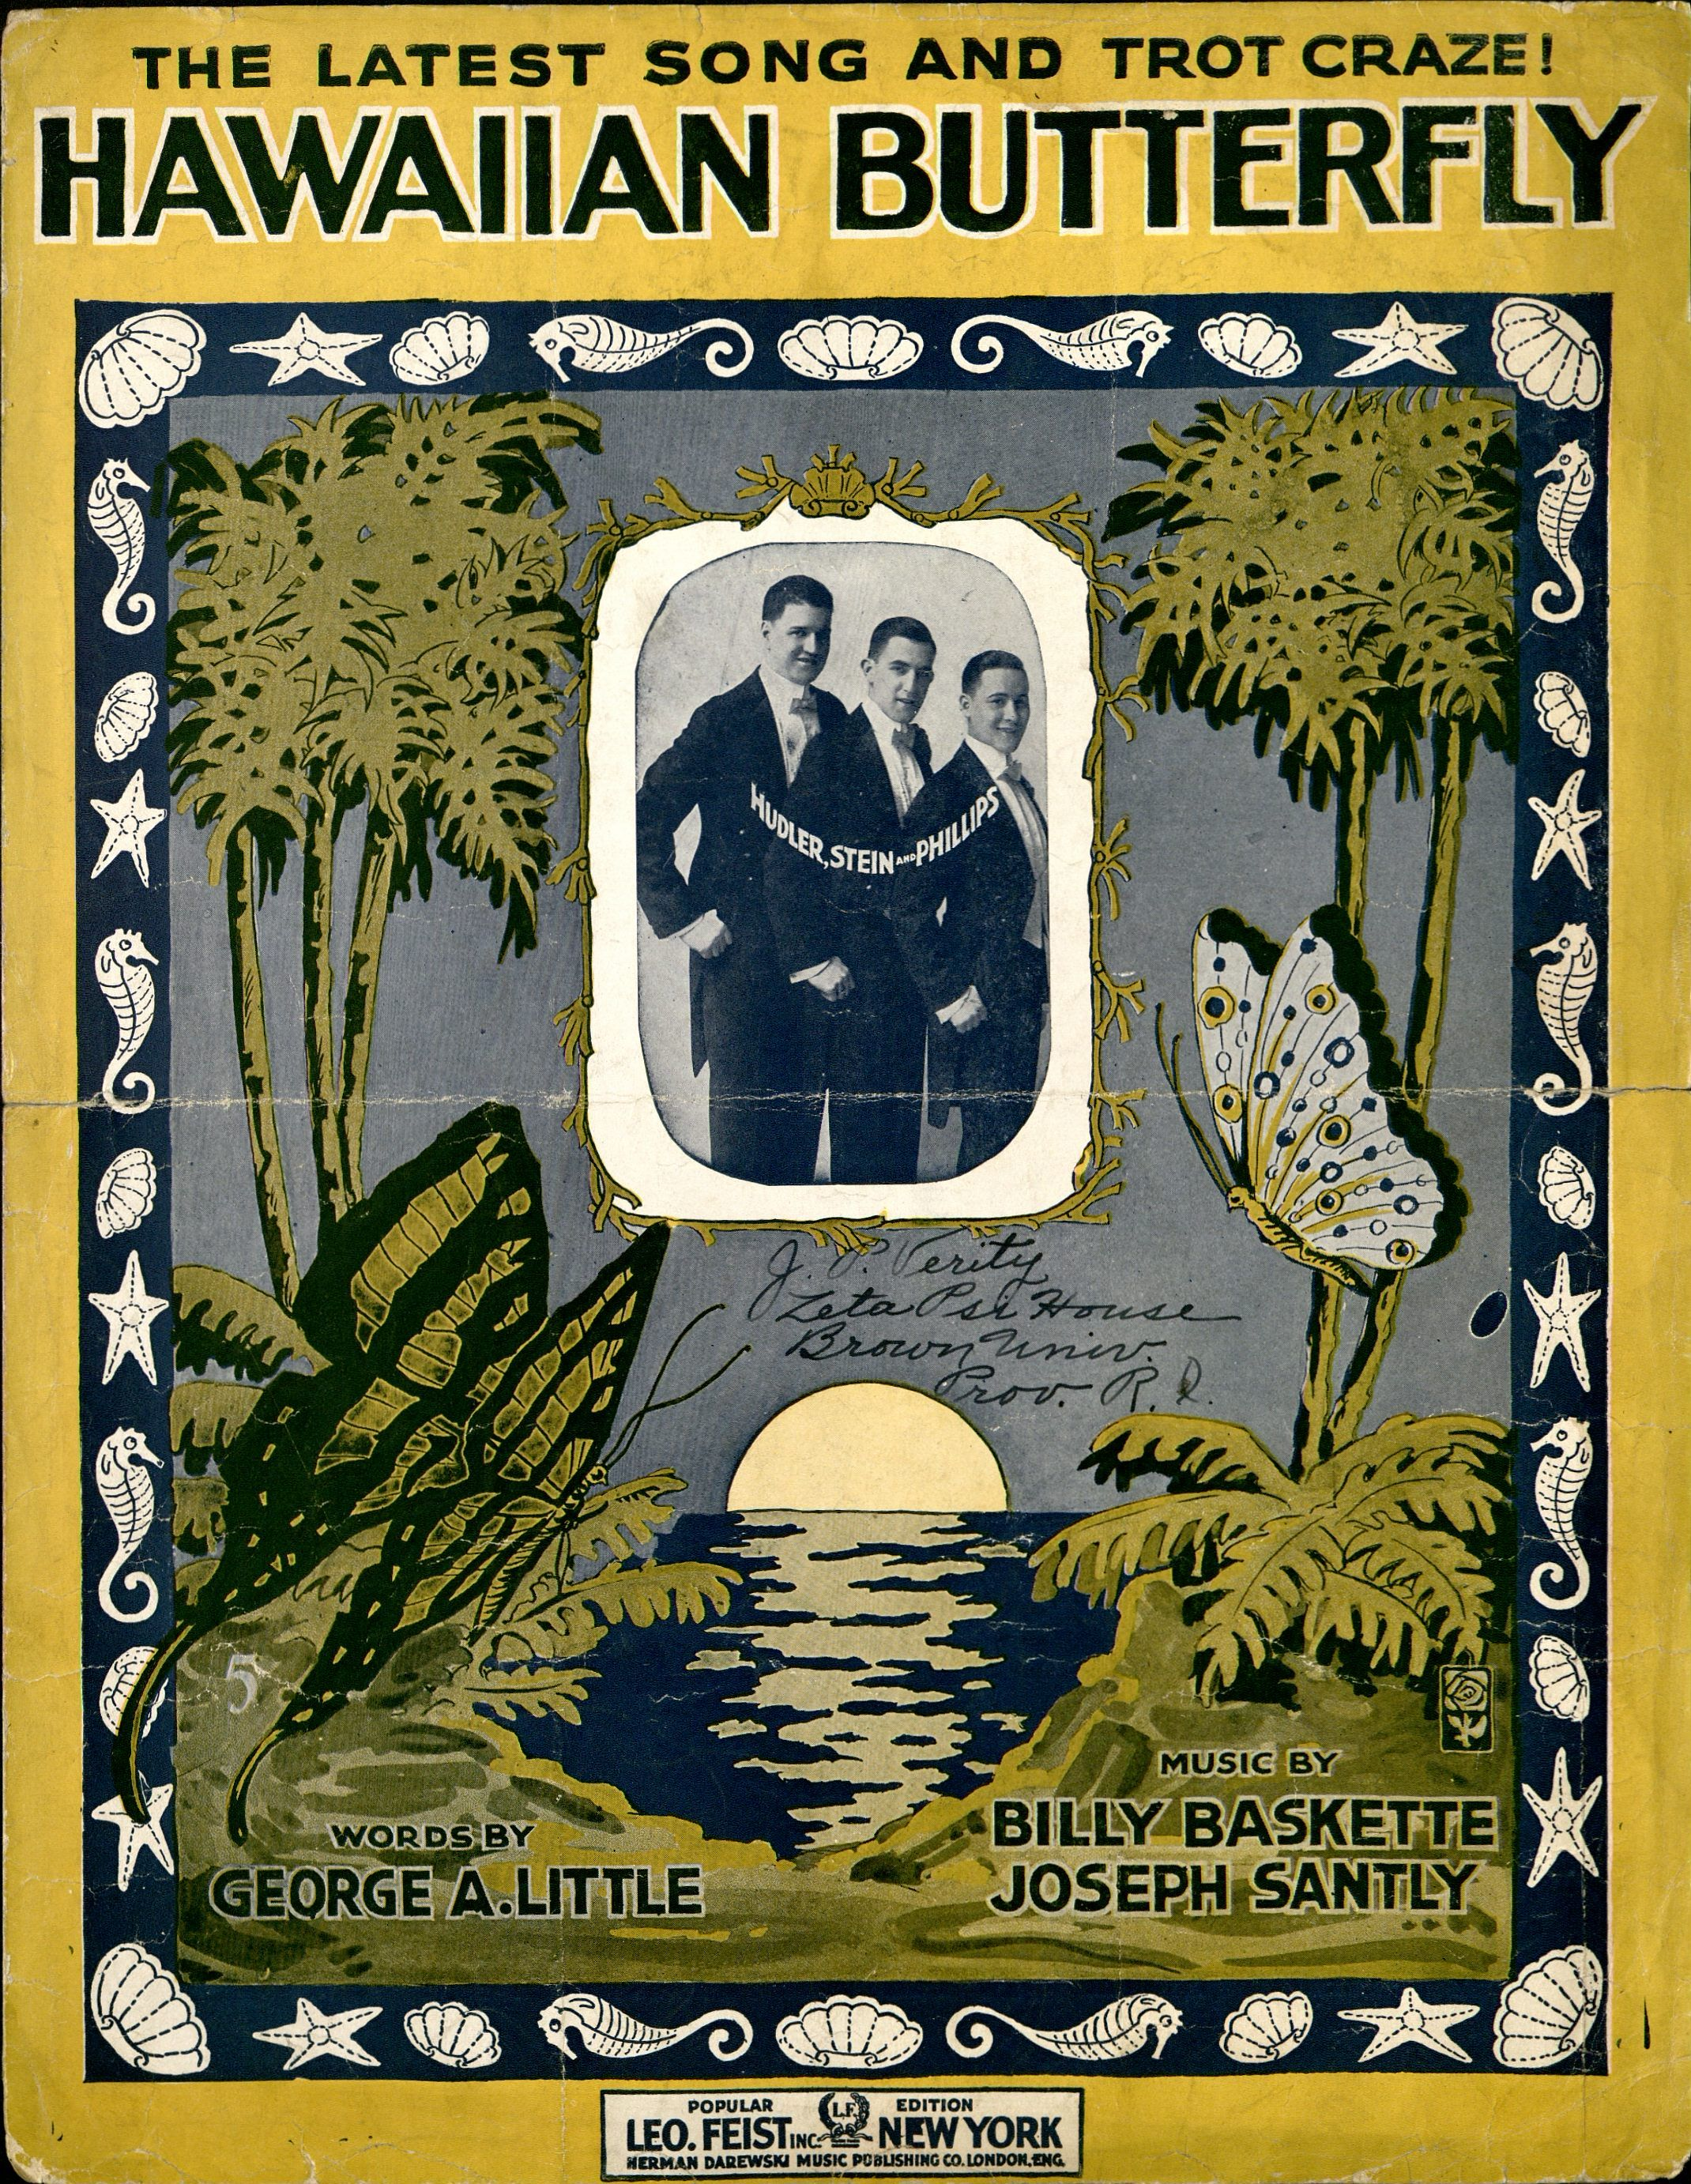 Sheet music 159 (CC)